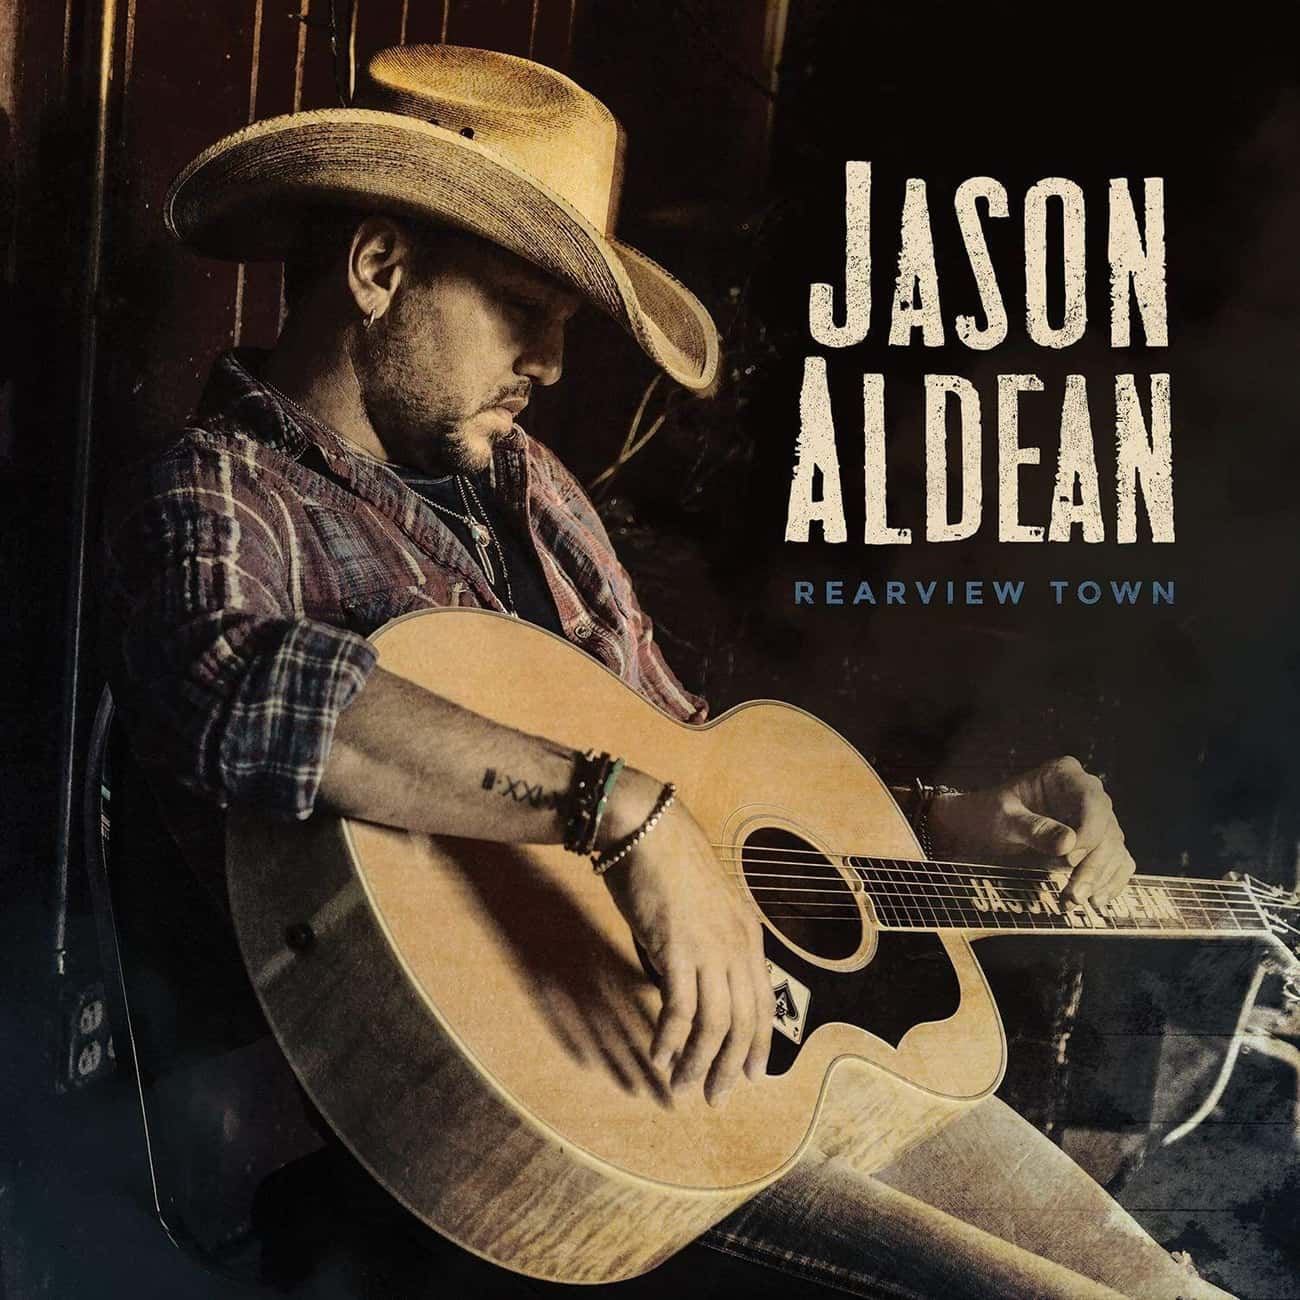 Rearview Town is listed (or ranked) 3 on the list The Best Jason Aldean Albums, Ranked